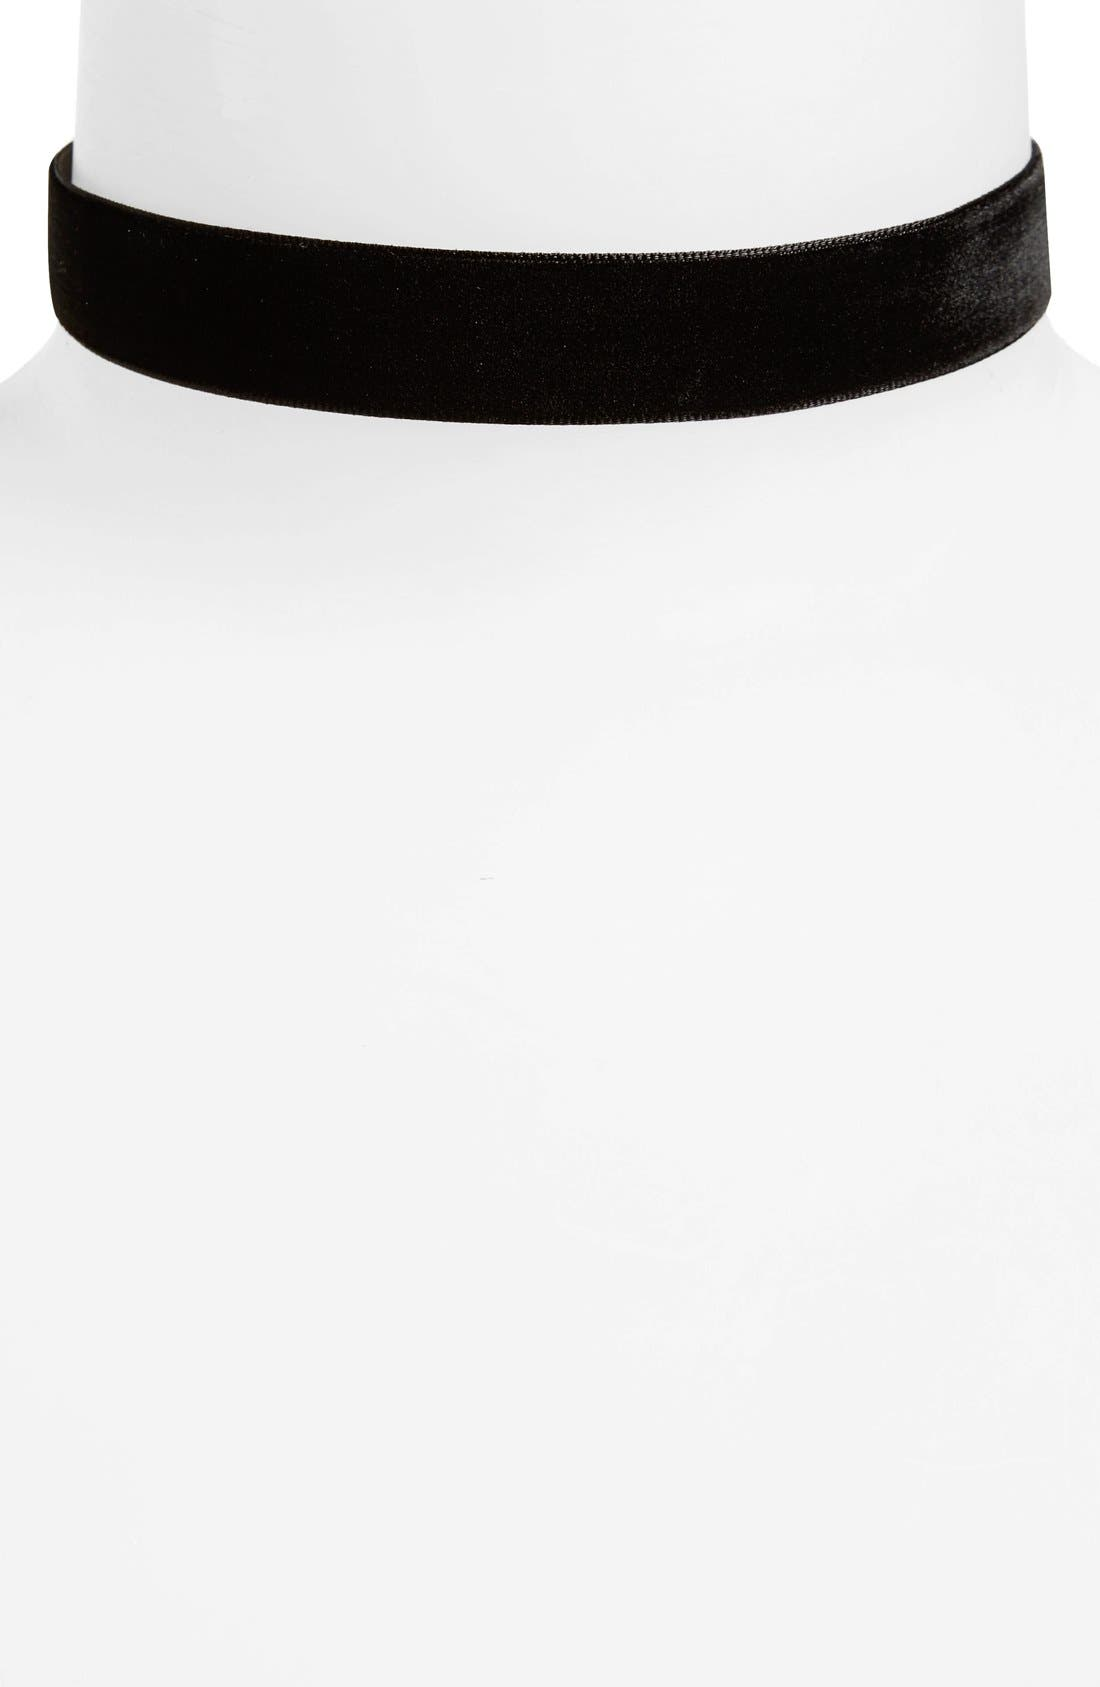 TOPSHOP 'Thick and Thin' Velvet Chokers, Main, color, 001